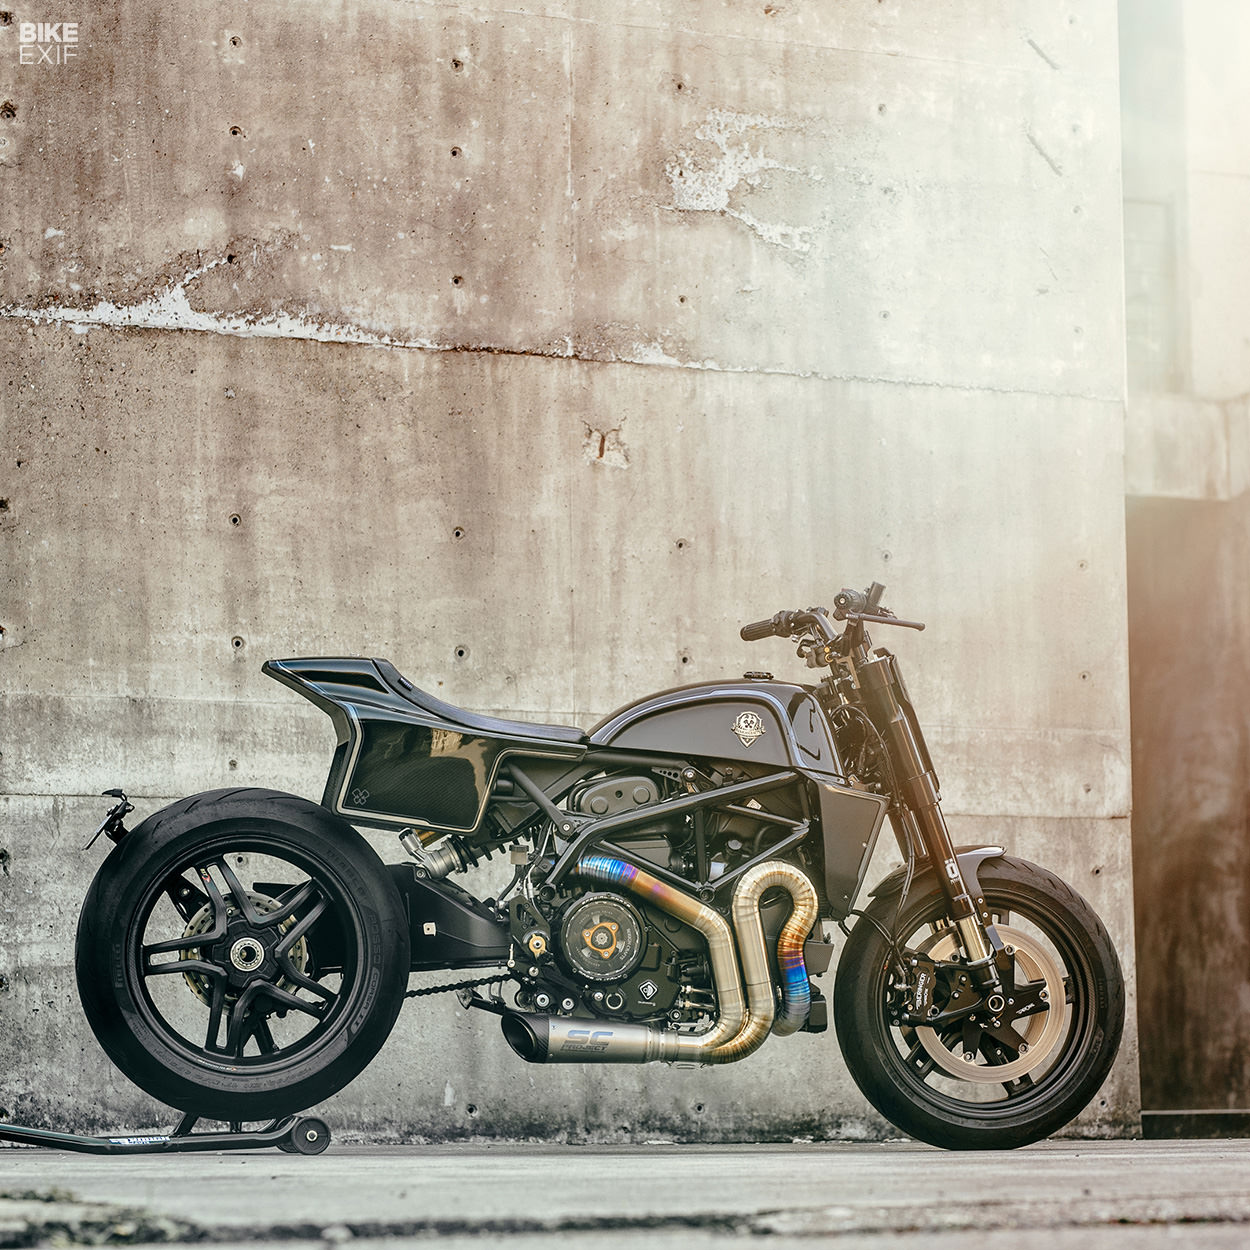 Custom Ducati Hypermotard 939 by Rough Crafts